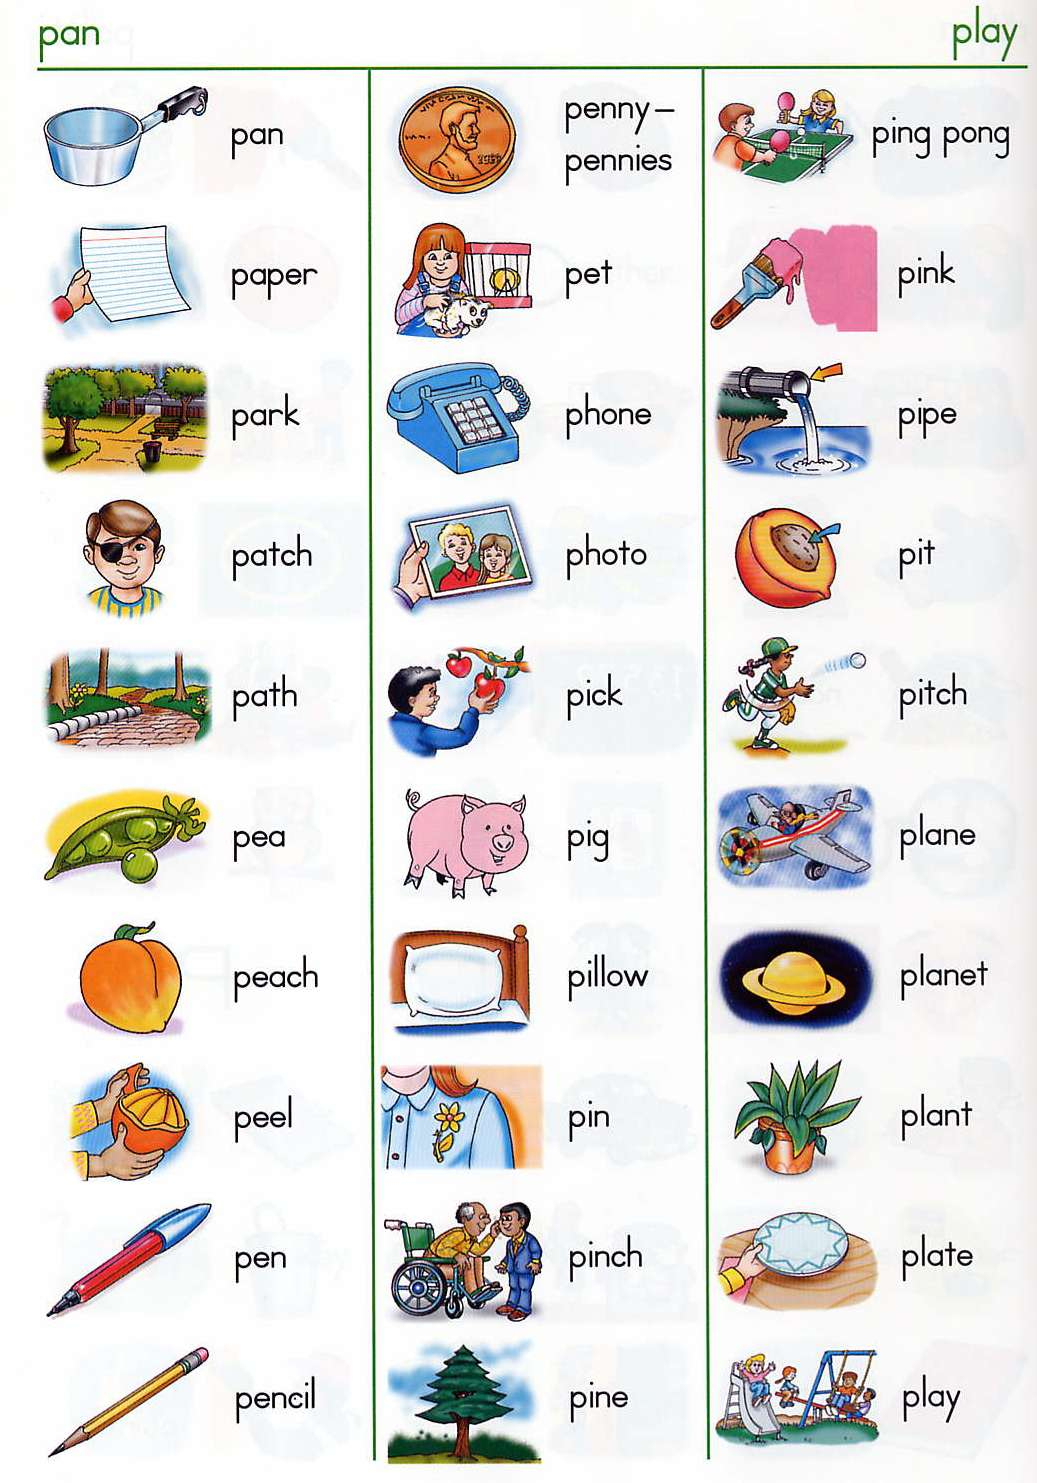 Englishlab: Tesol Printables & Worksheets - Free Printable Picture Dictionary For Kids